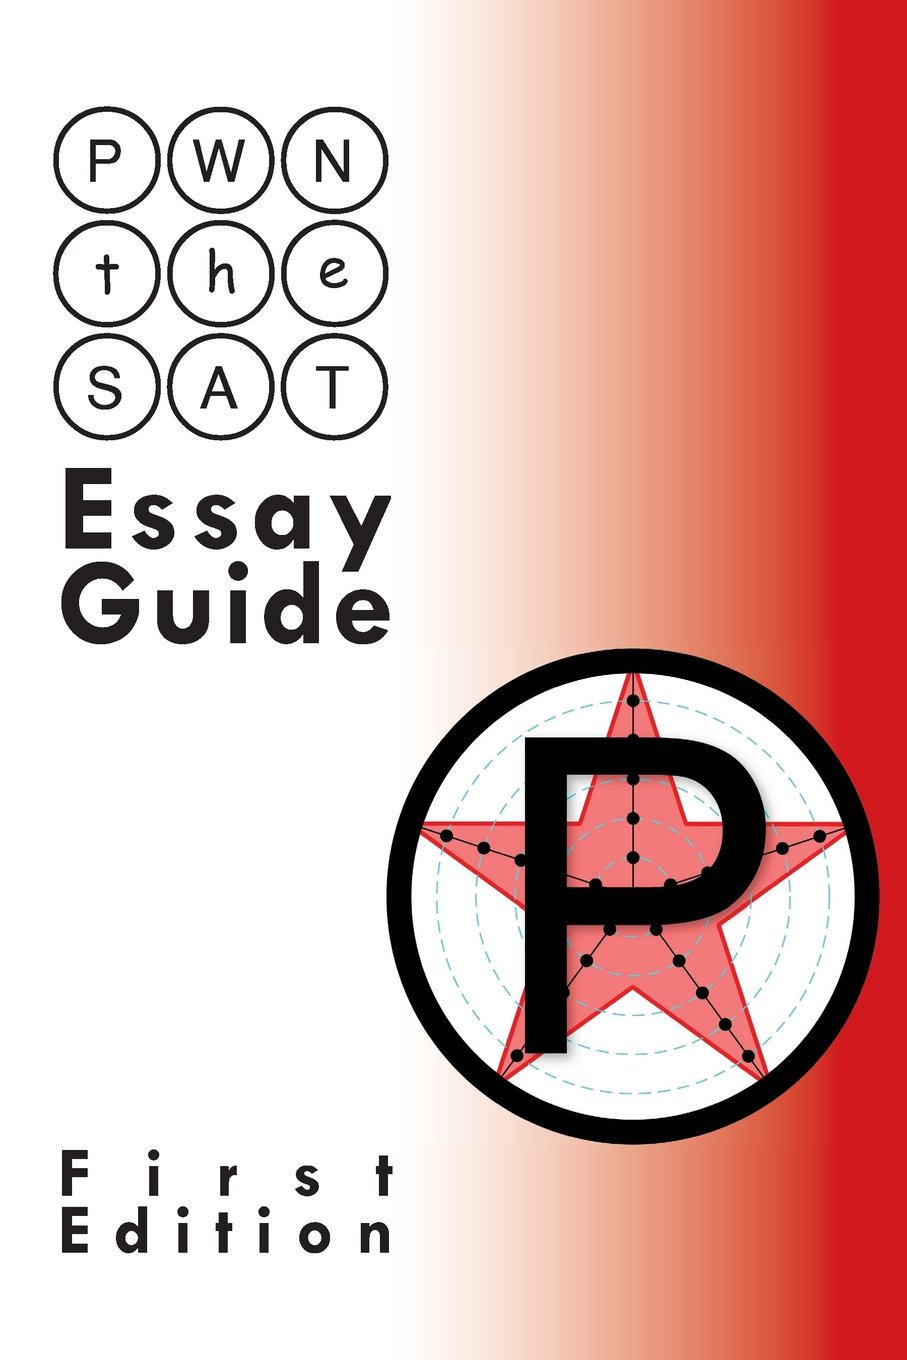 pwn the sat essay guide mike mcclenathan amazon pwn the sat essay guide mike mcclenathan 9781491007648 com books